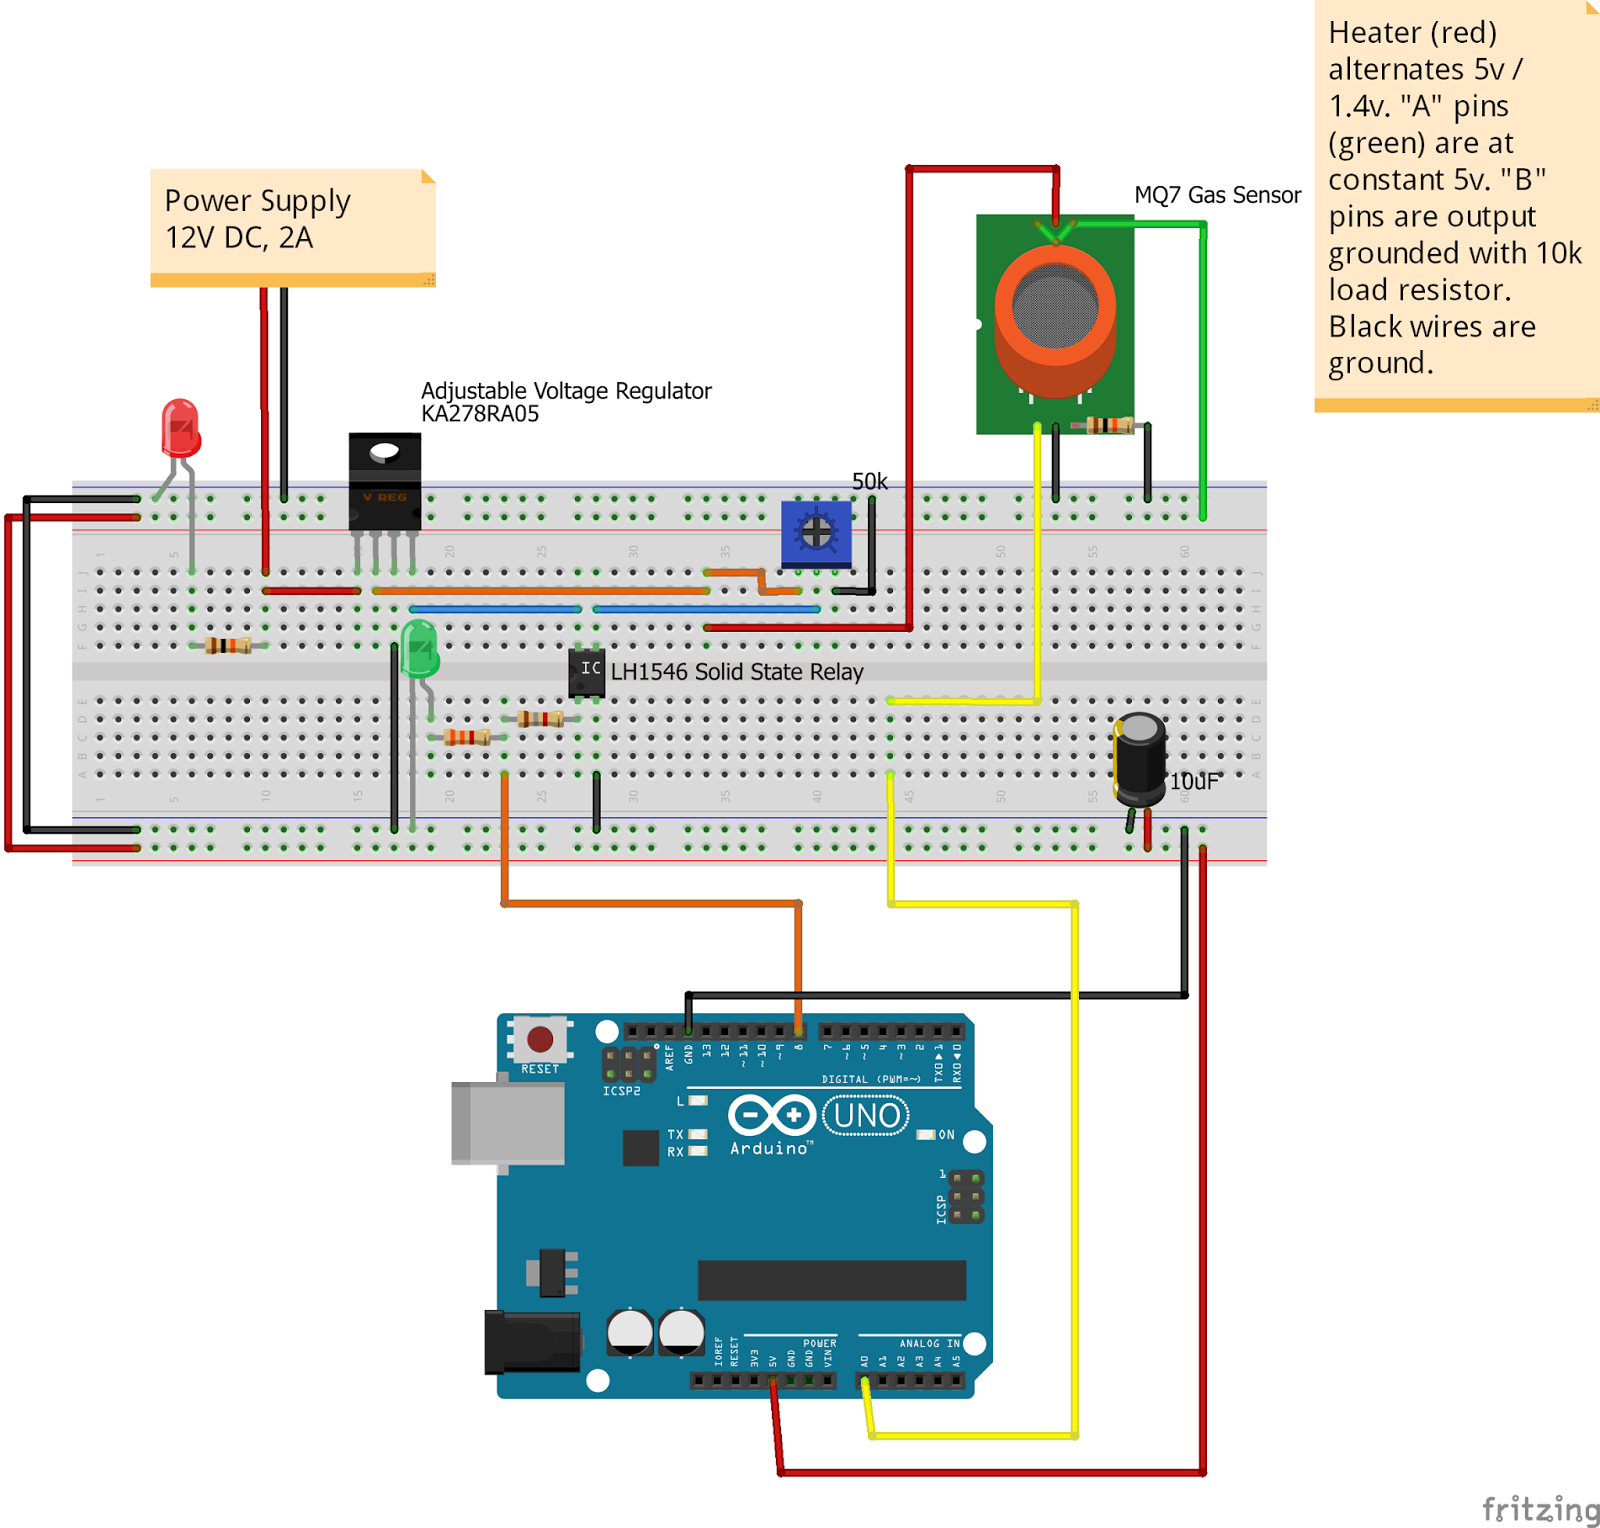 Internet of Things: CO (Carbon Monoxide) Gas Sensor Using